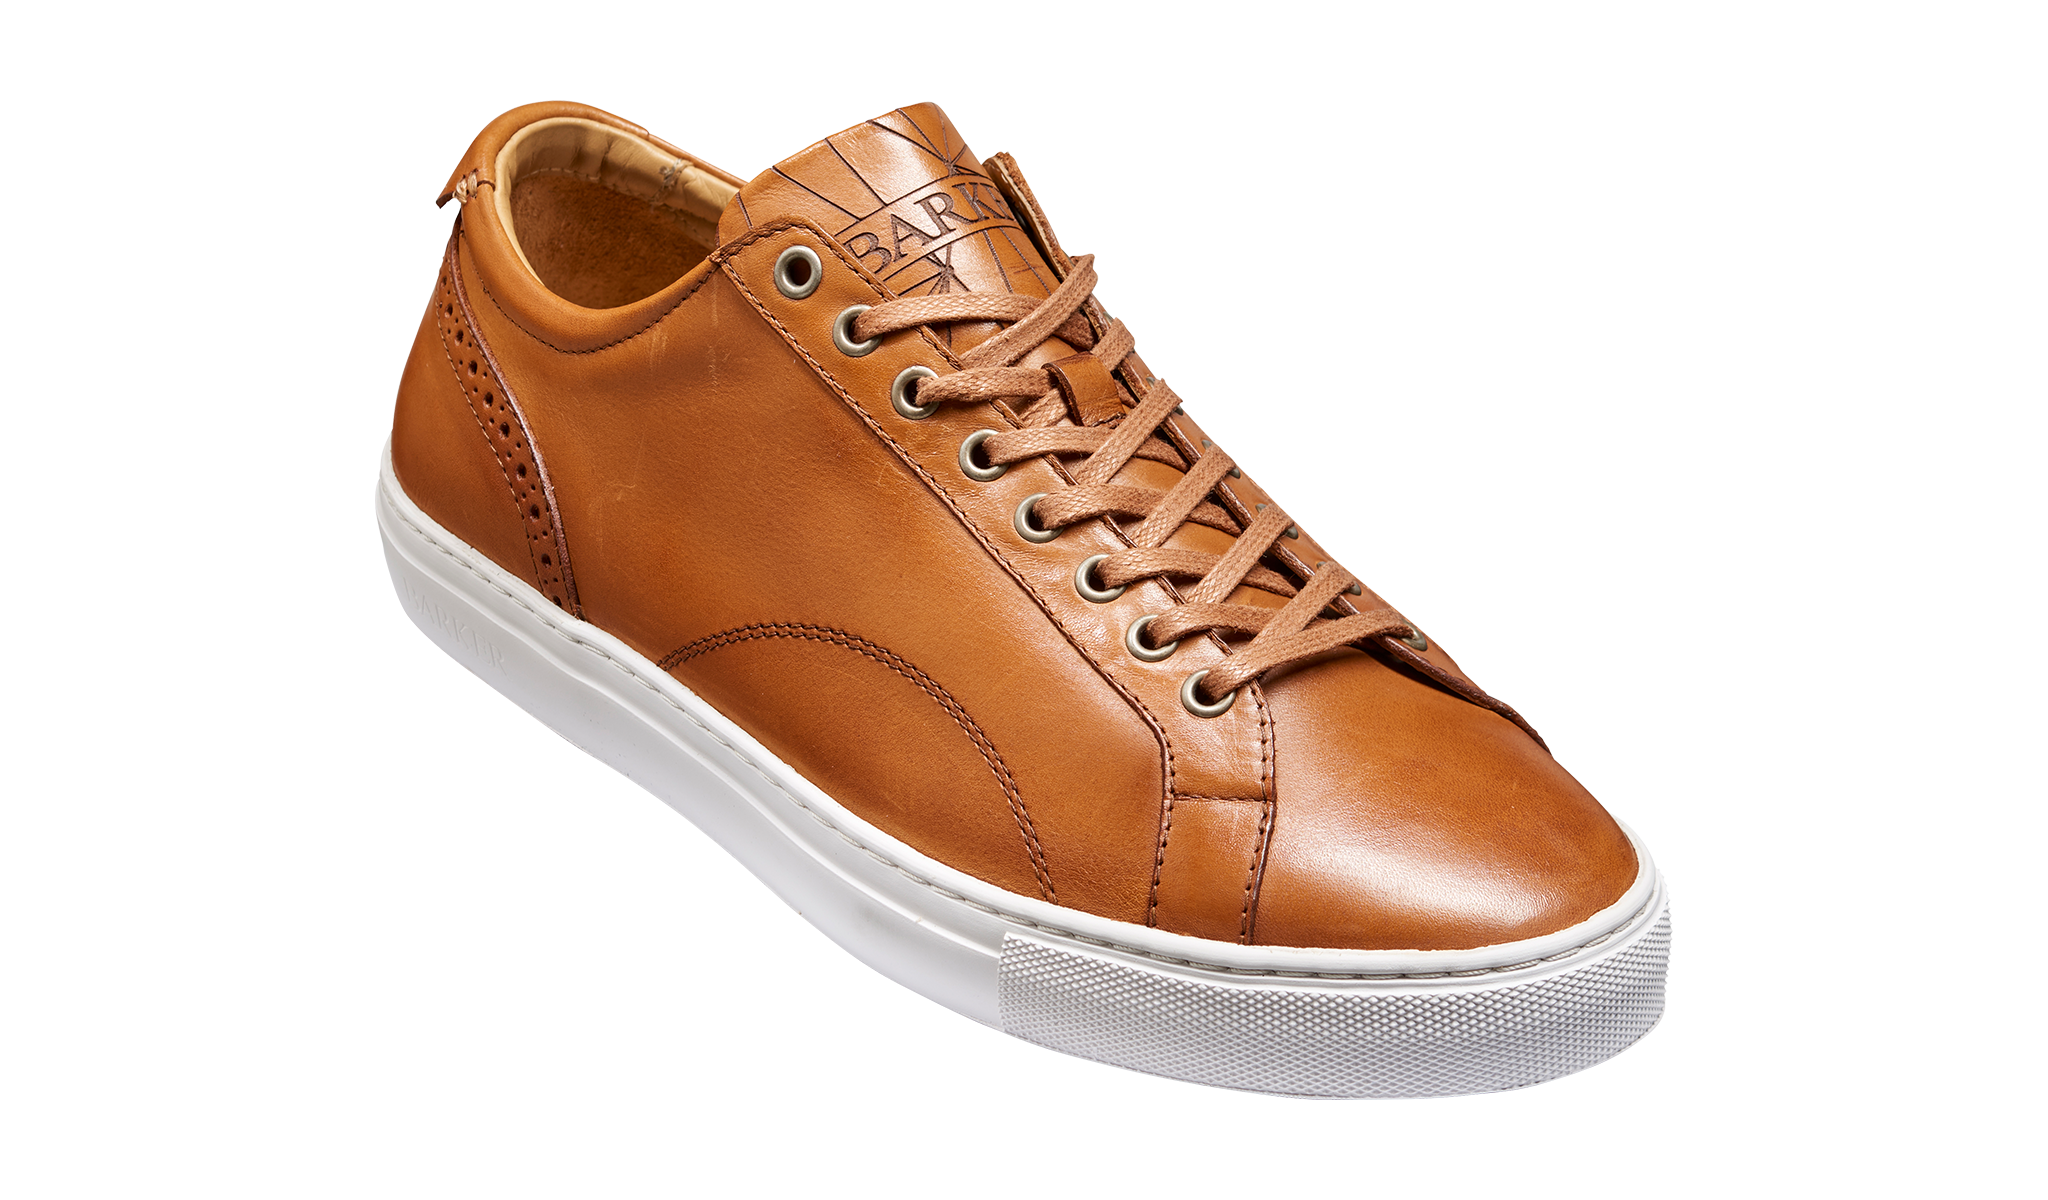 Axel - A sneakers for men by Barker Shoes.